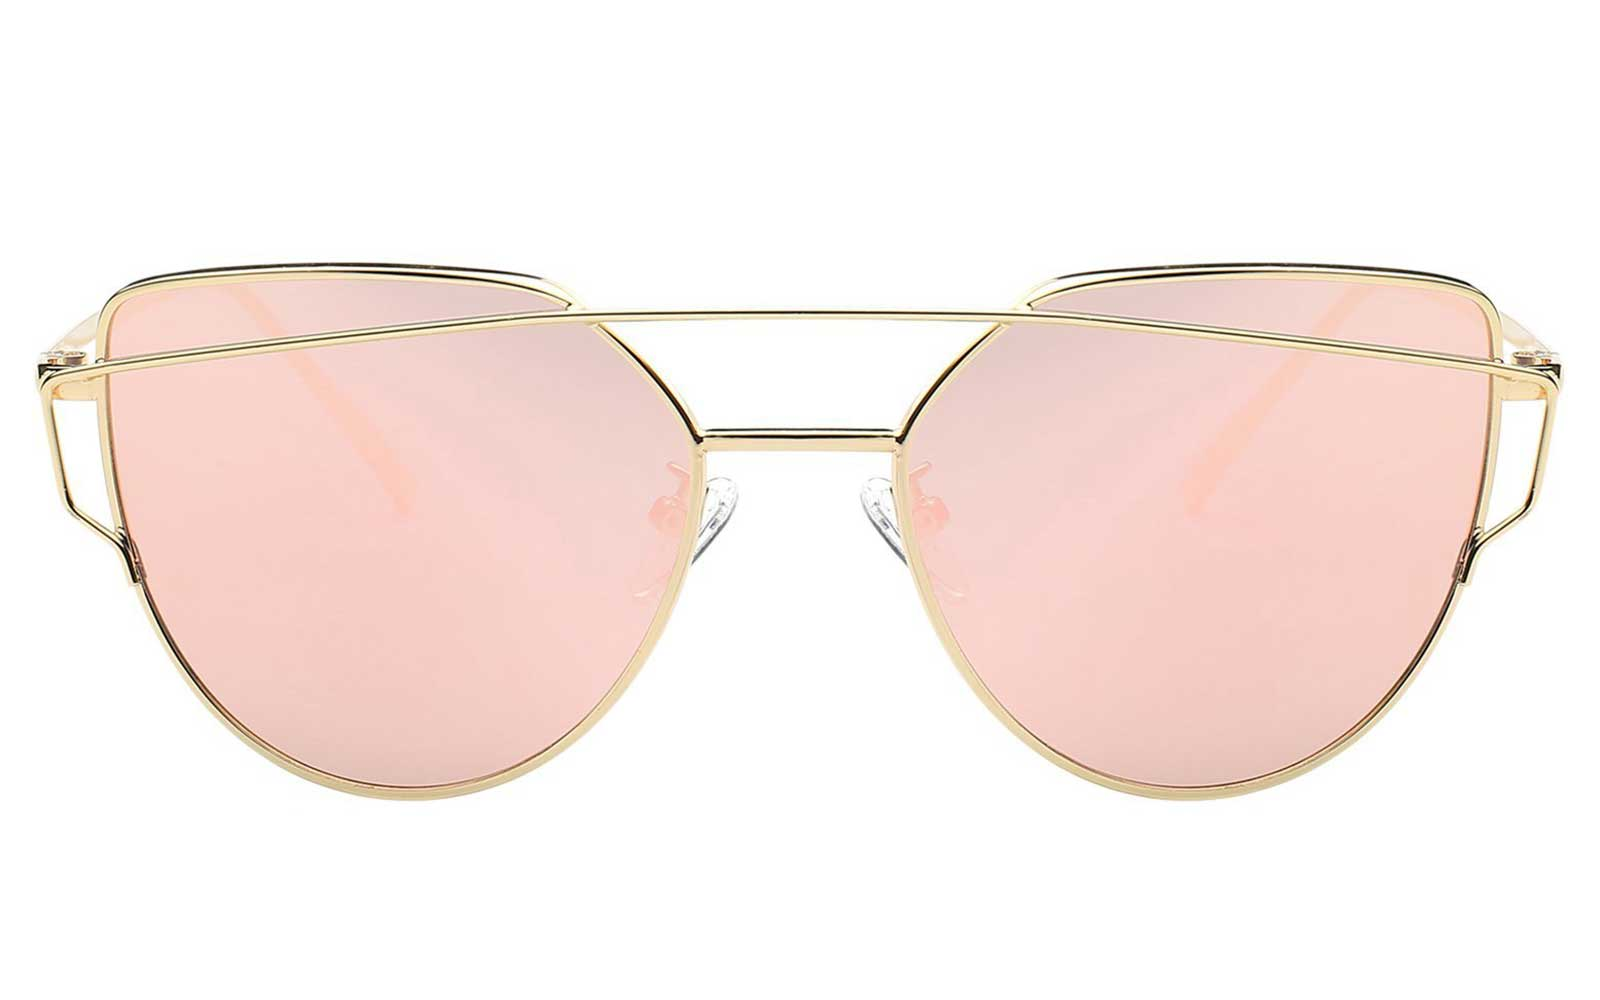 Pink Mirrored Sunglasses